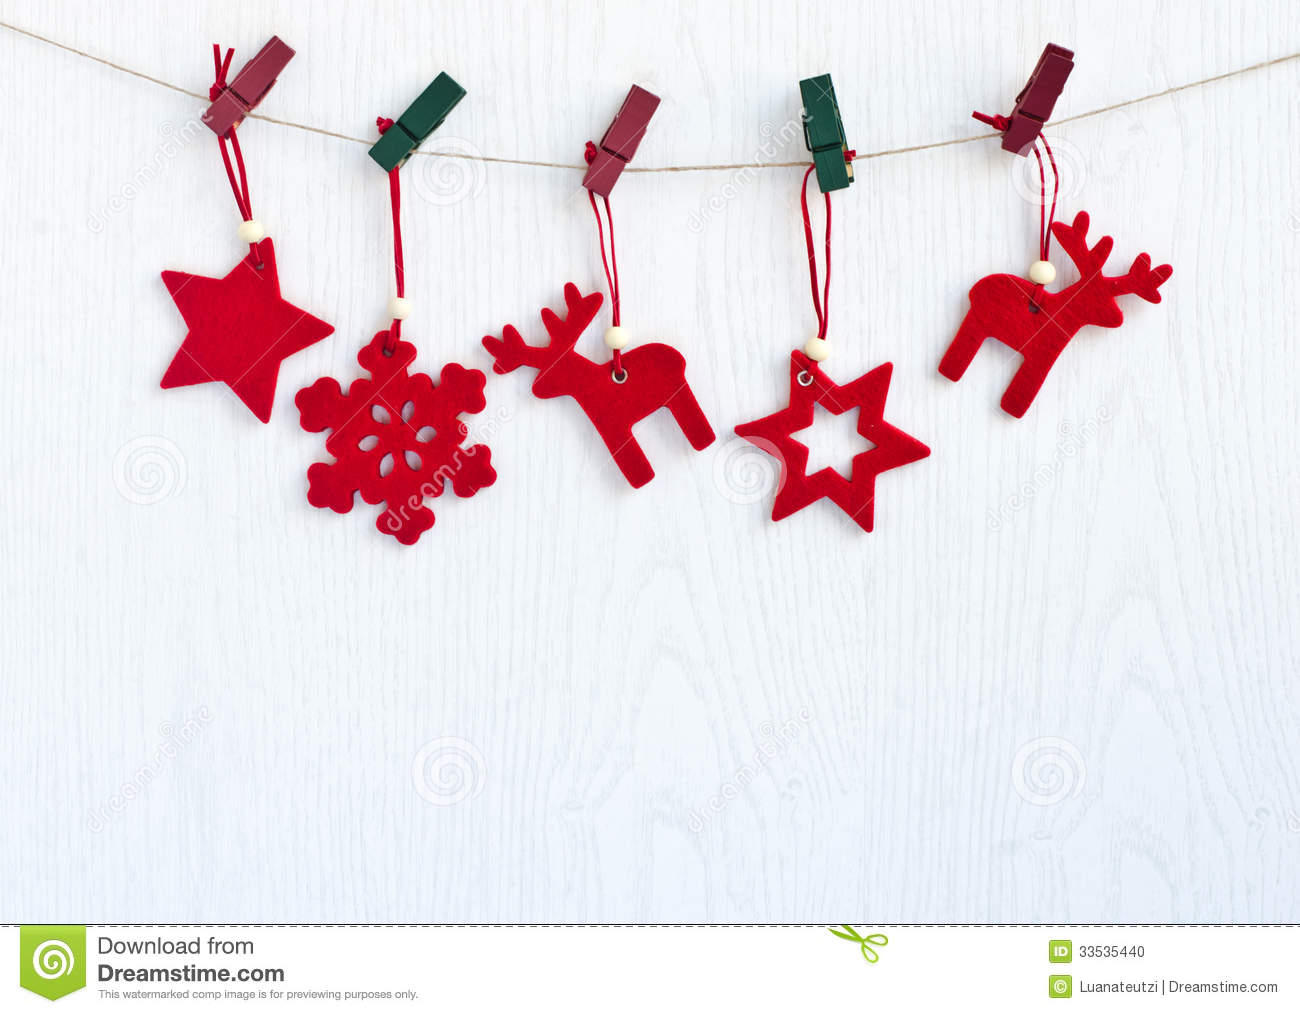 download red christmas decorations hanging from a rope stock photo image of merry - Christmas Hanging Decorations